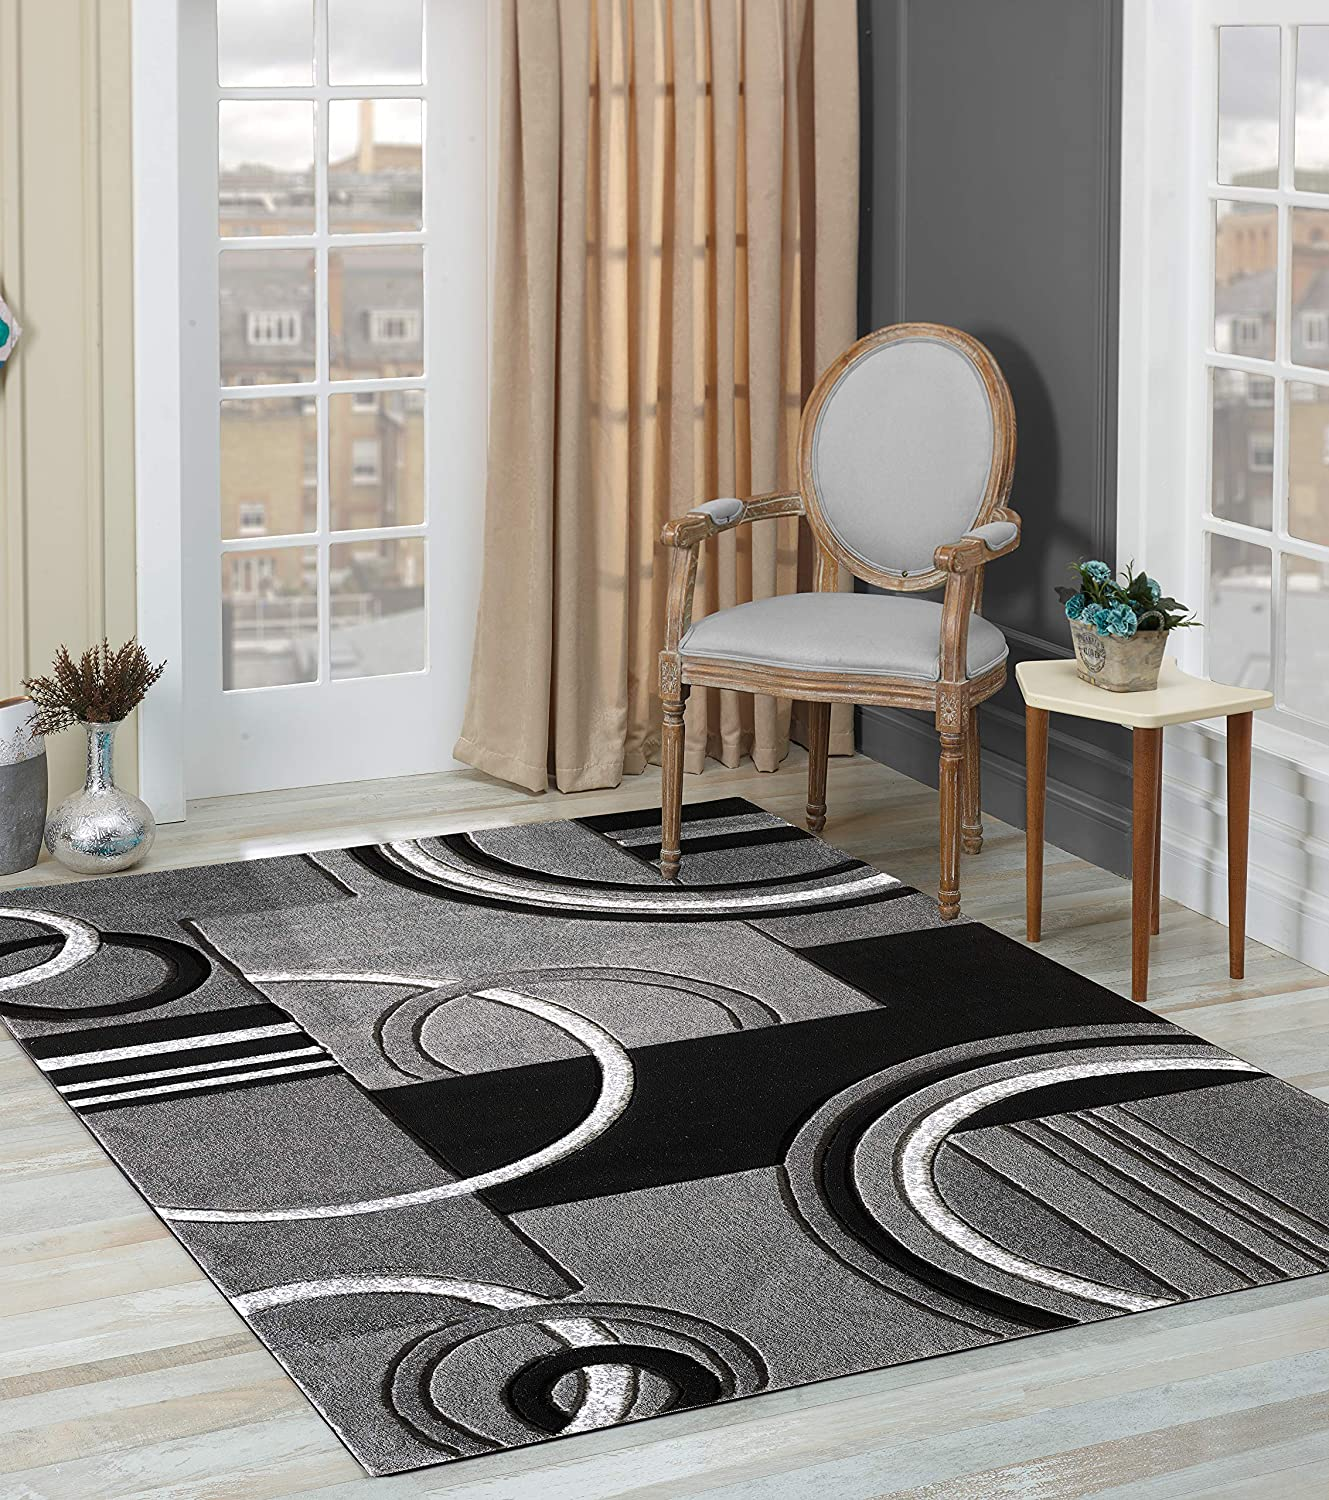 GLORY RUGS Area Nippon regular agency Rug Modern 8x10 Contempora Hand Grey Soft Carved Cheap